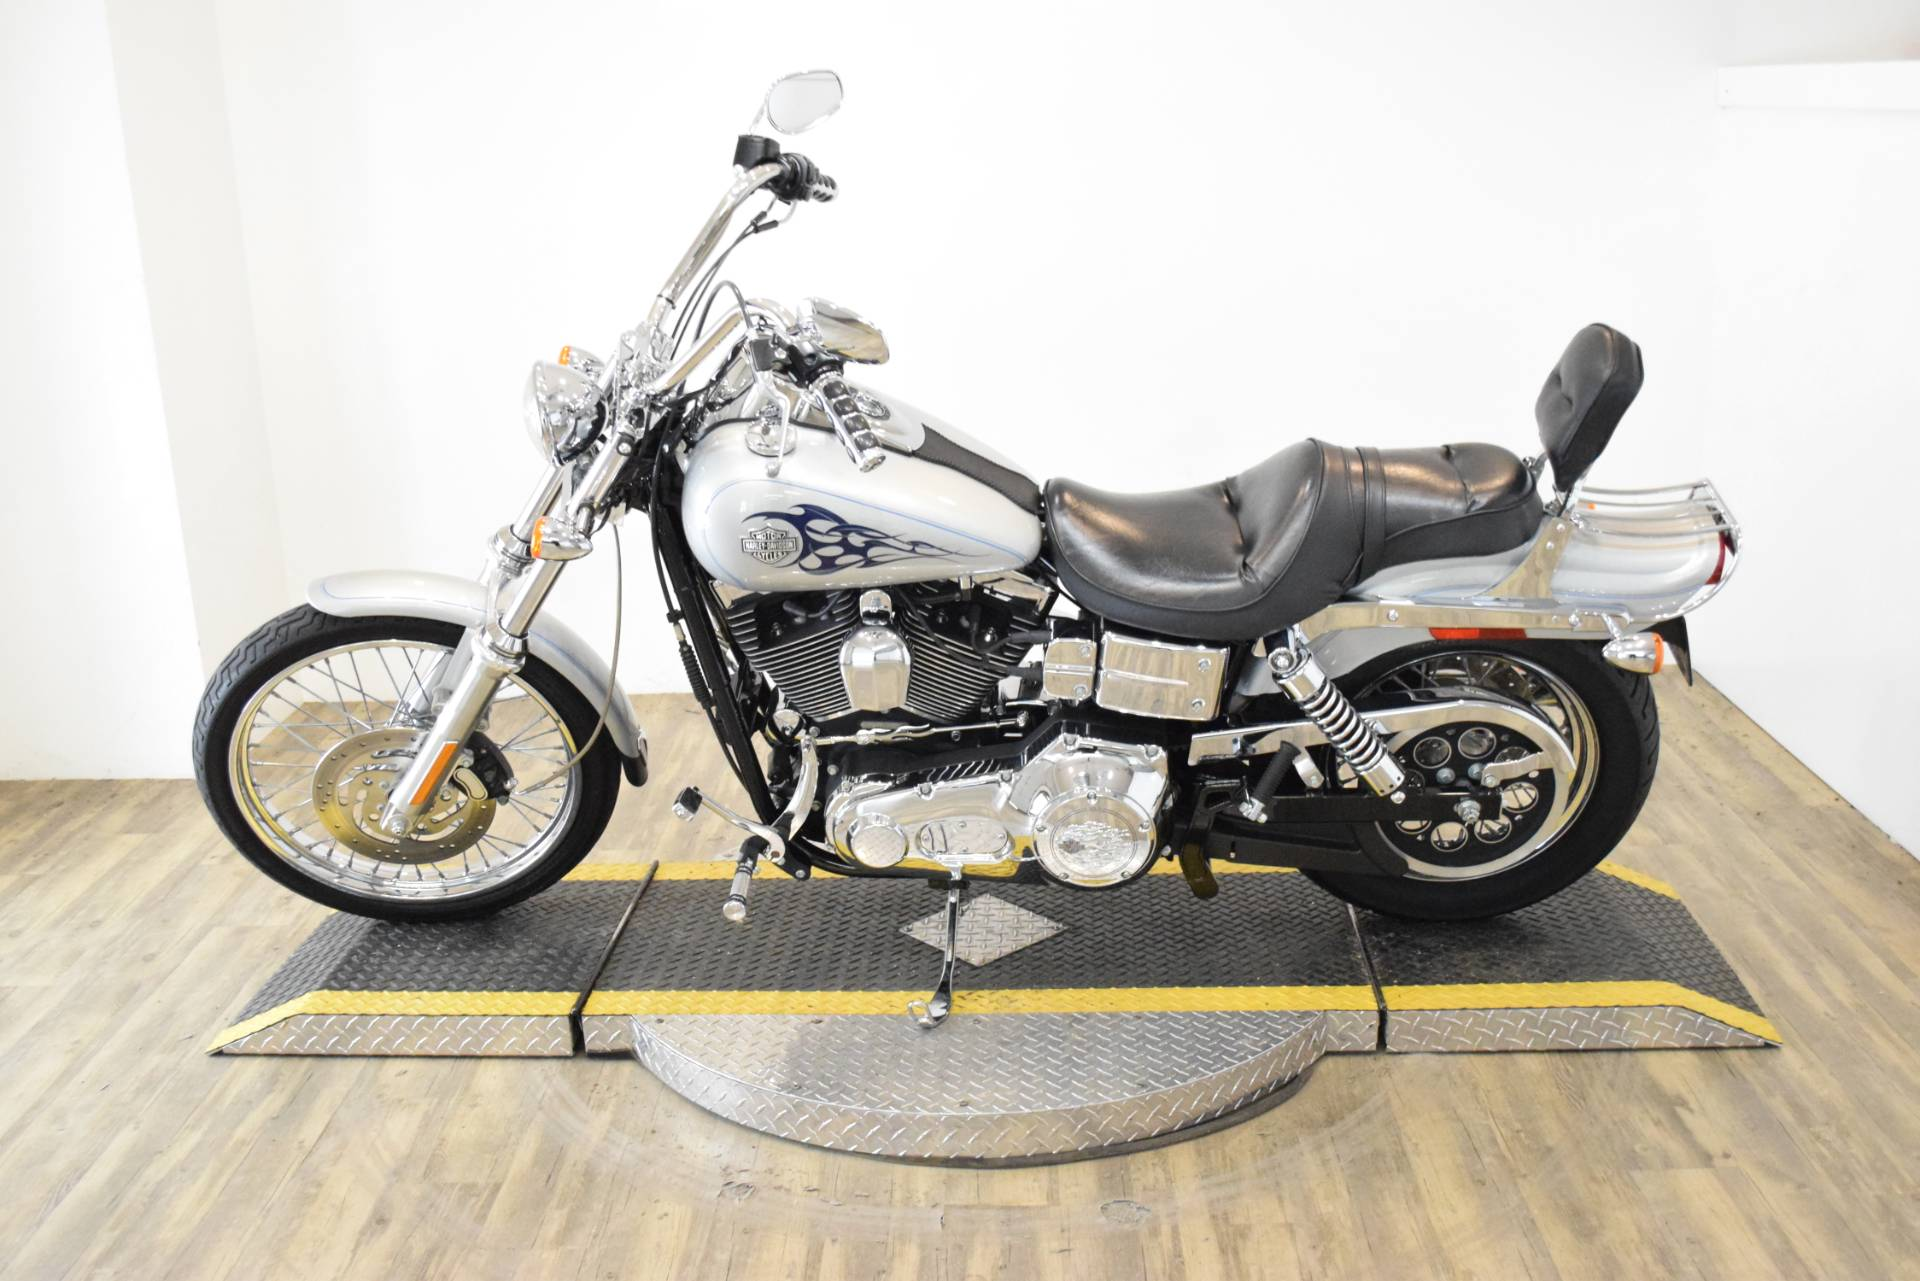 2004 Harley-Davidson FXDWG/FXDWGI Dyna Wide Glide® in Wauconda, Illinois - Photo 16